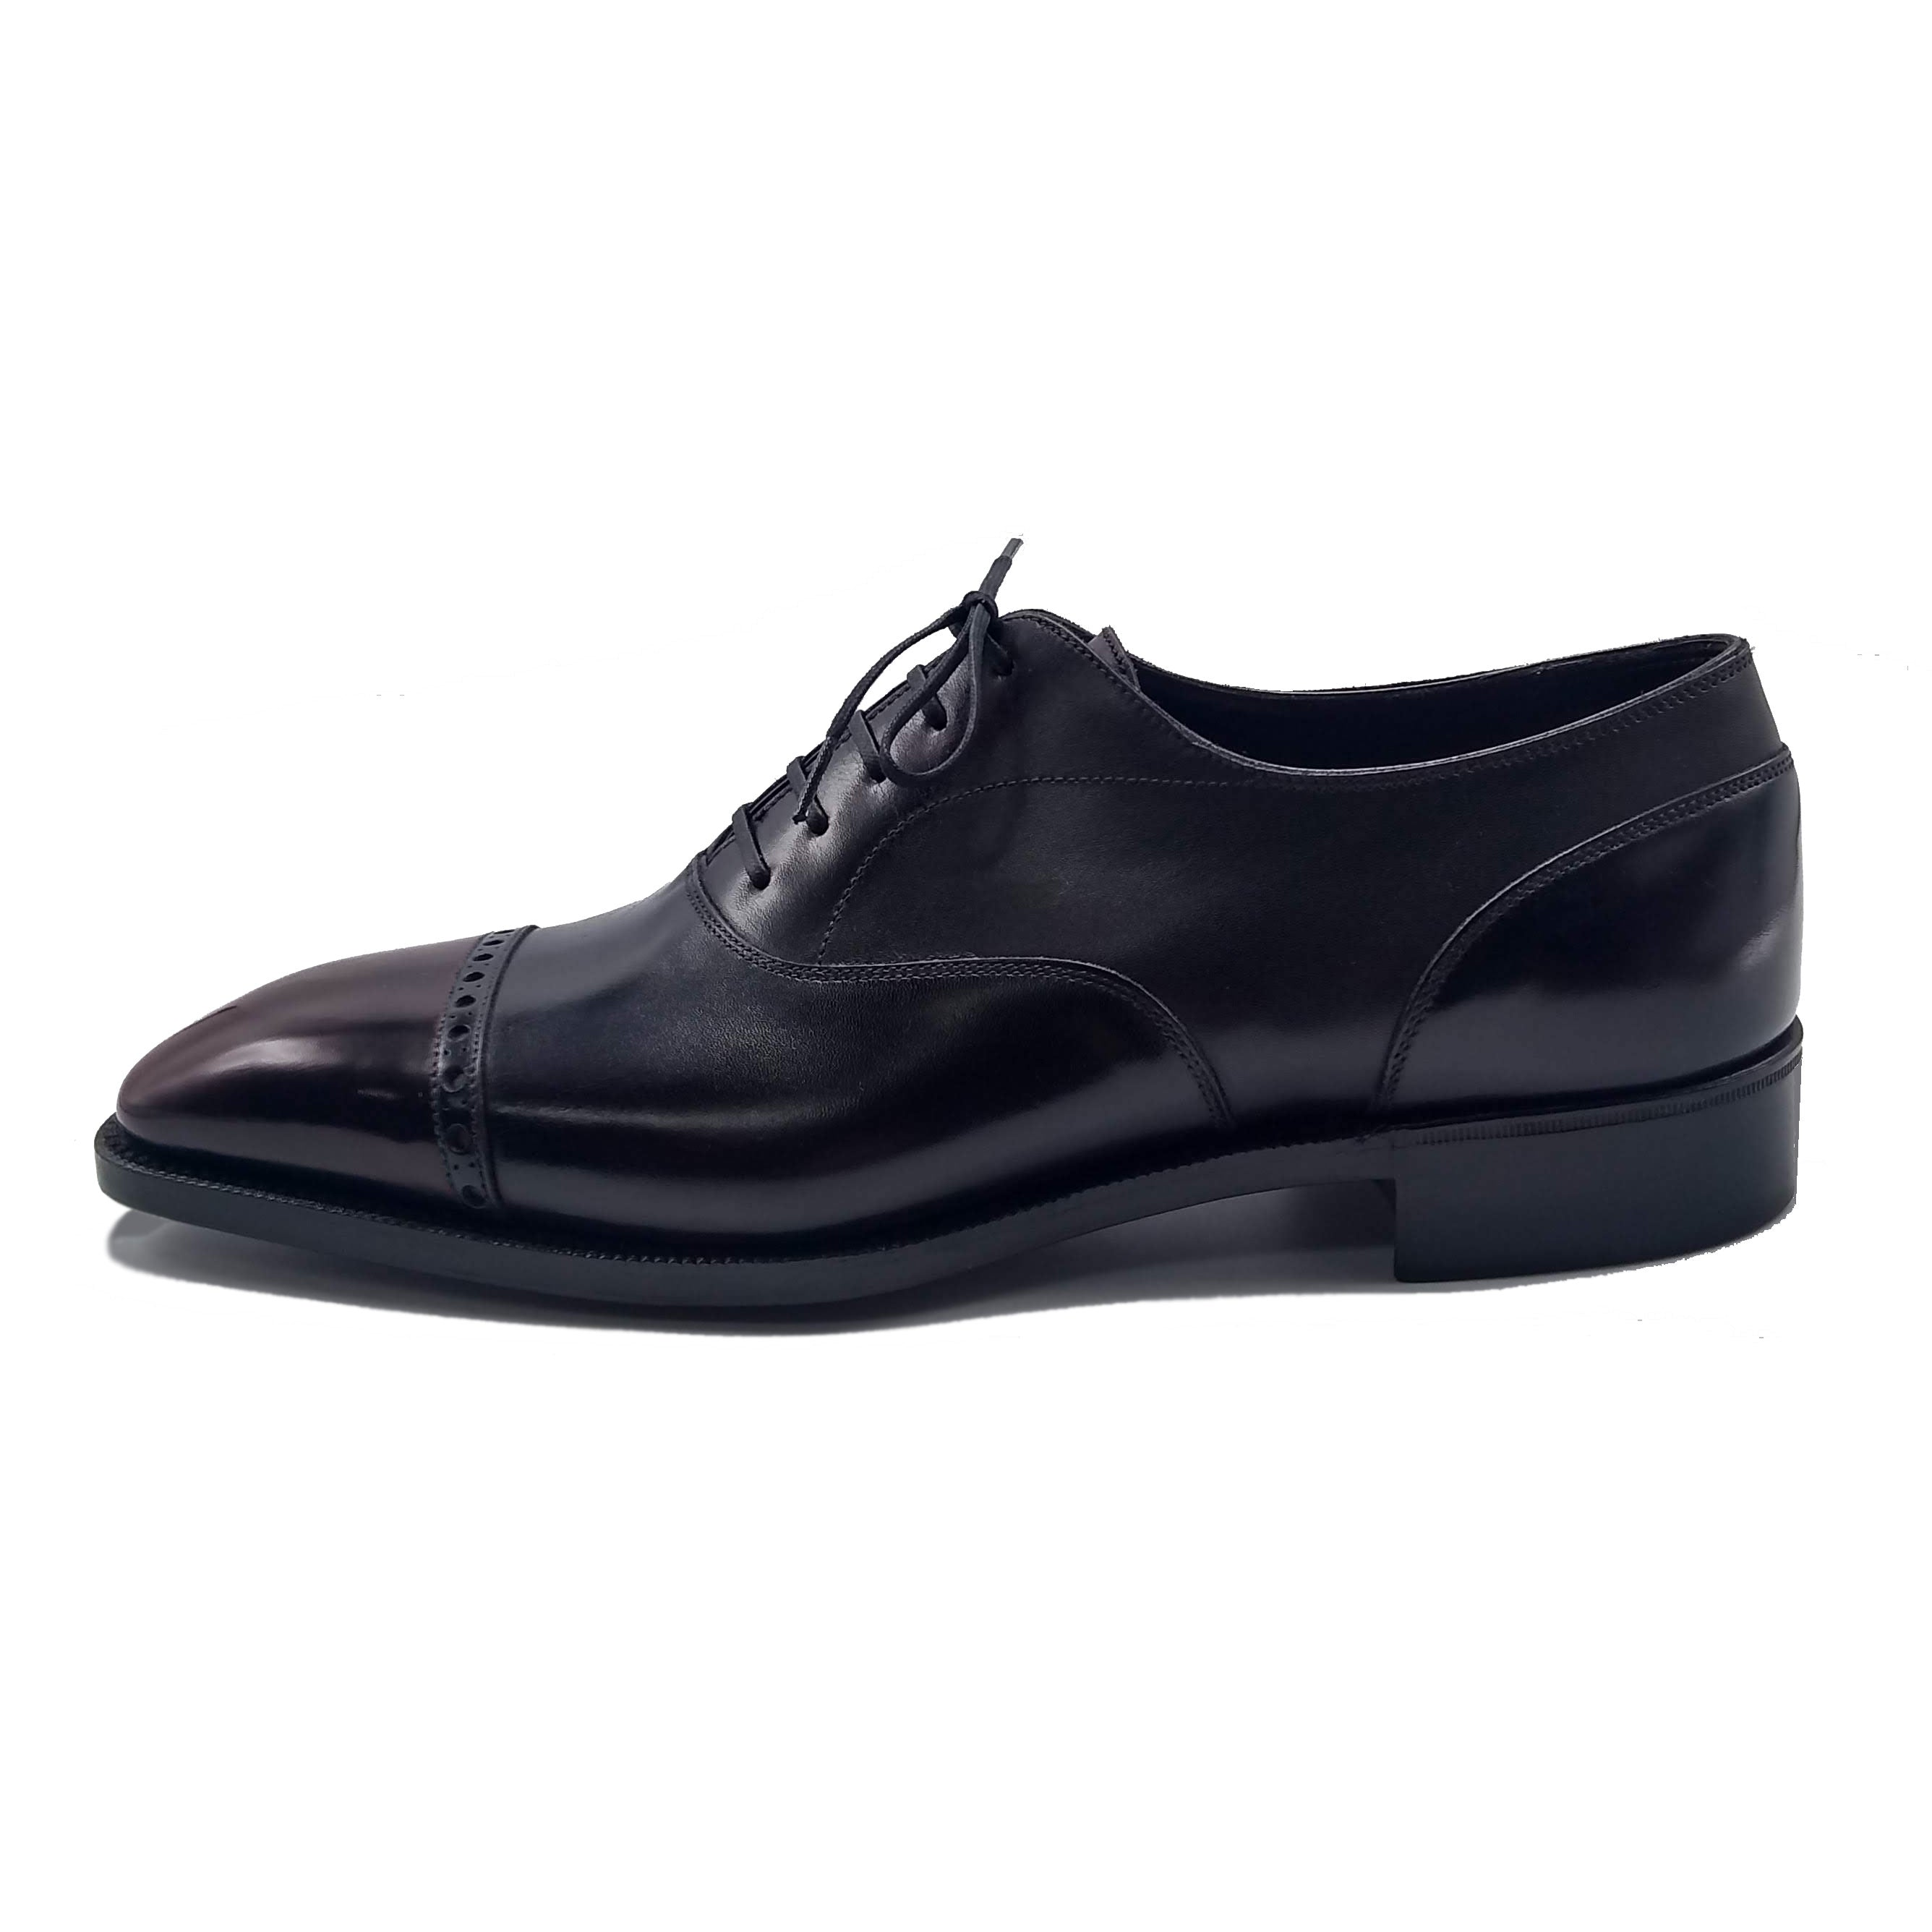 Cap Toe Oxford Shoe - Black and Bordeaux Patina